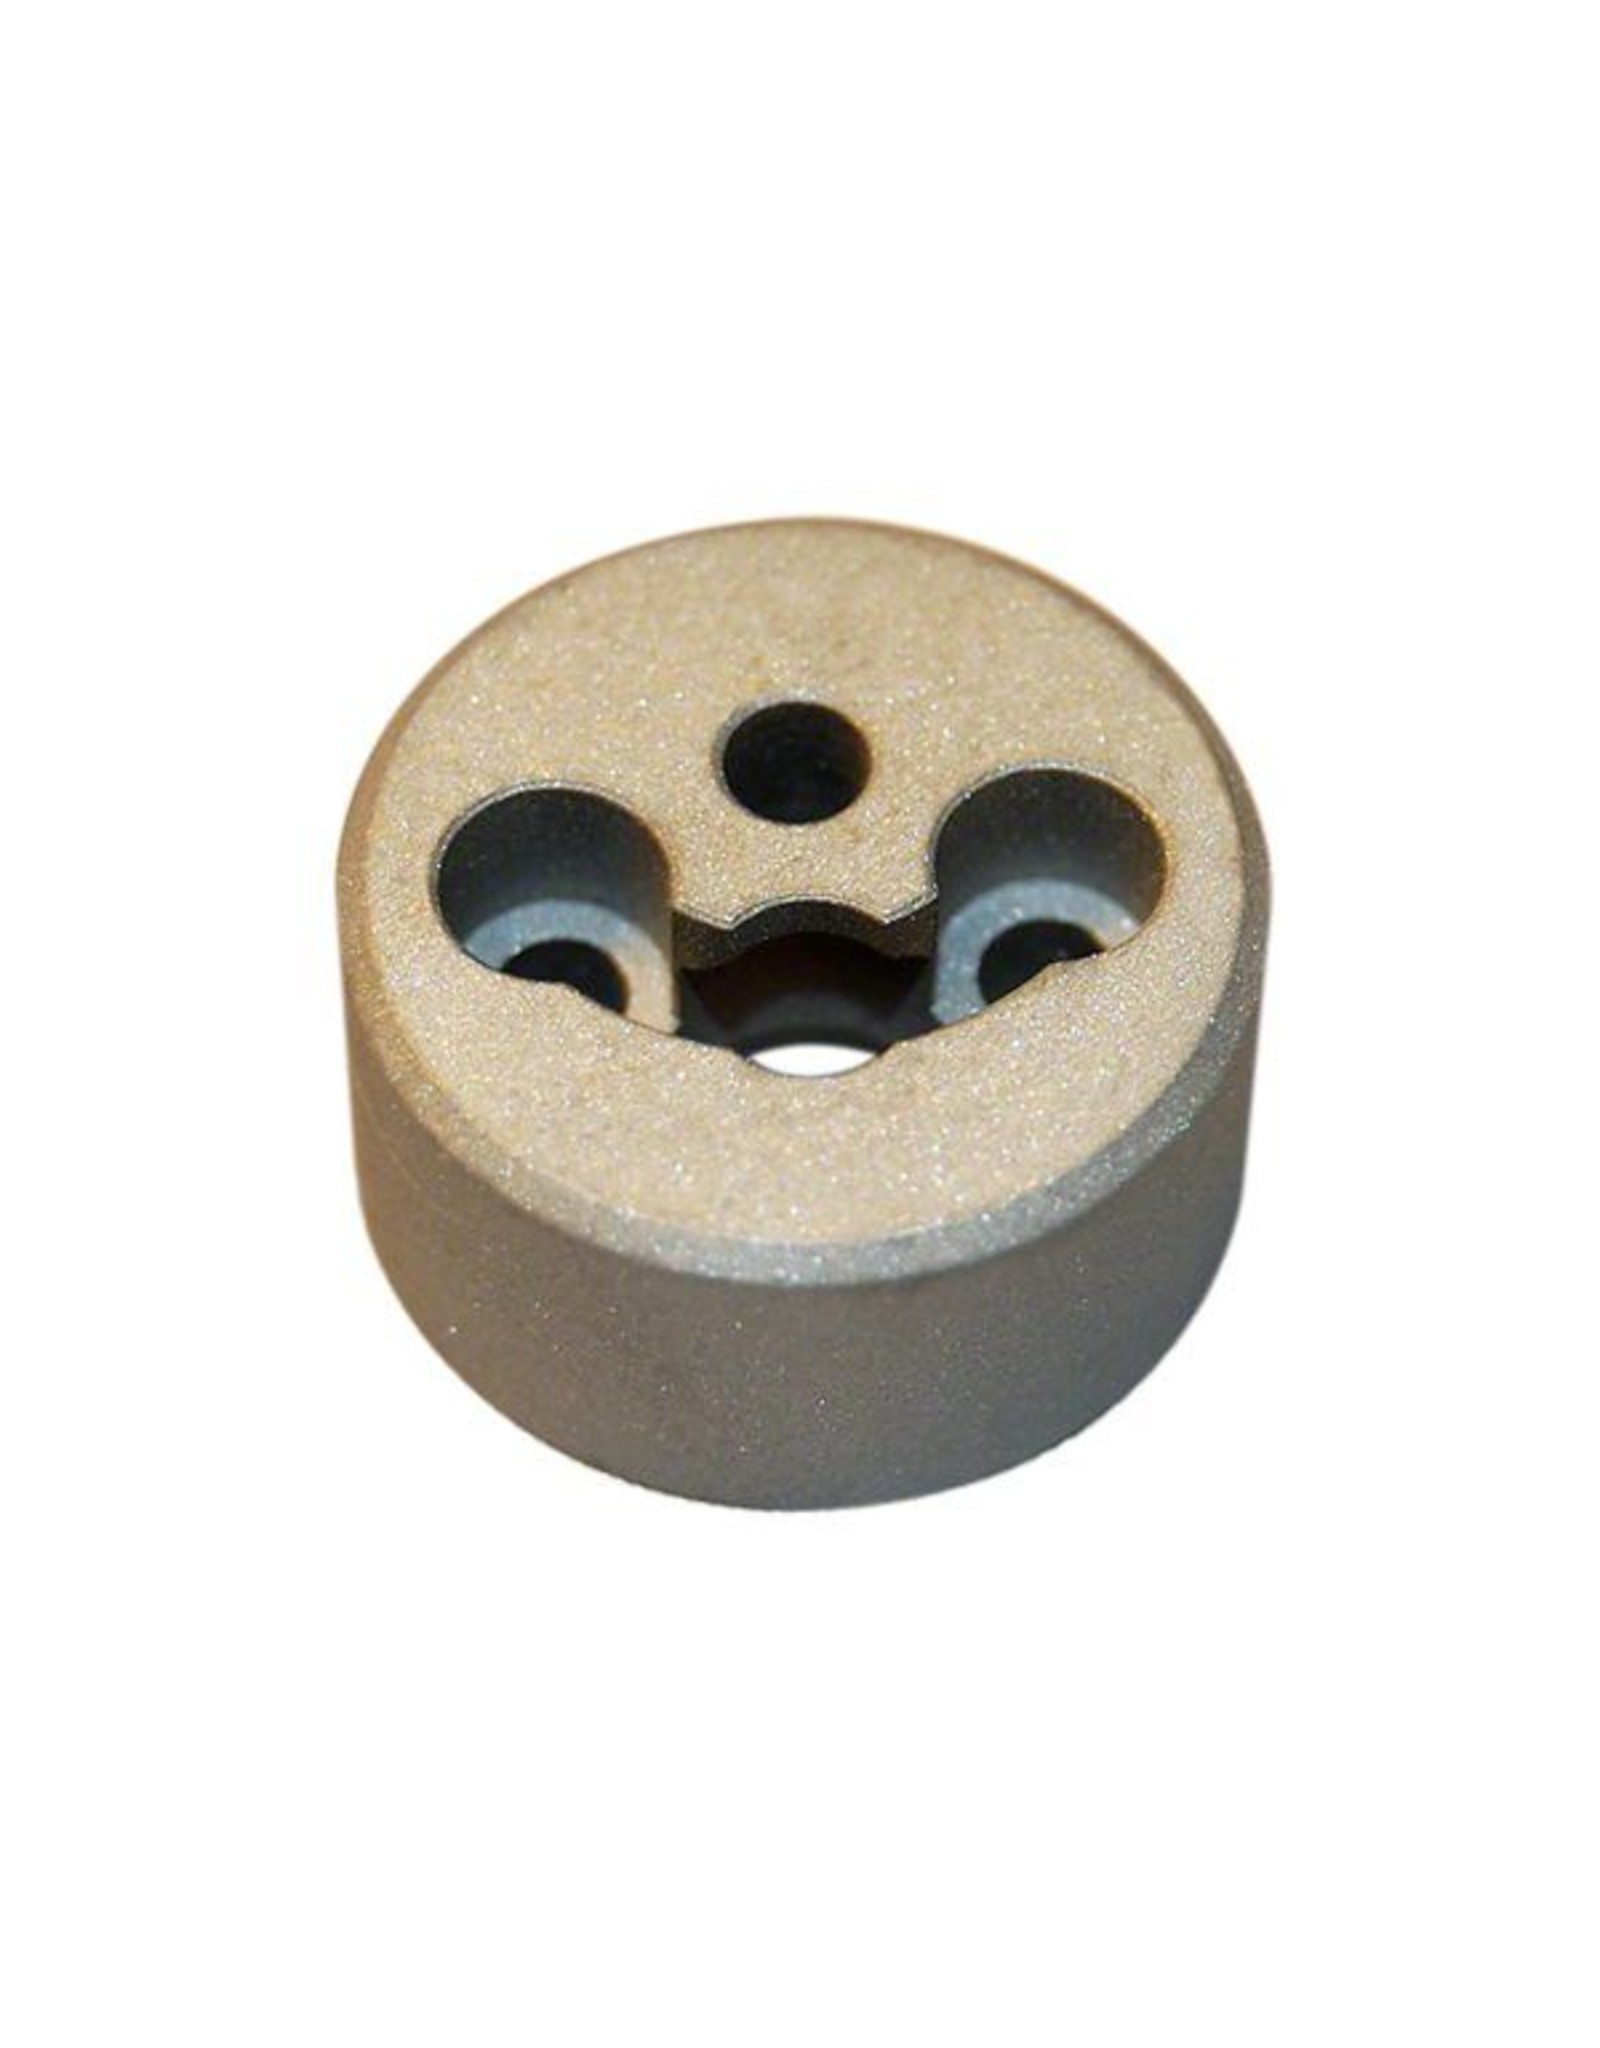 OMAX Style Check Valve Retainer (Manifold Side)